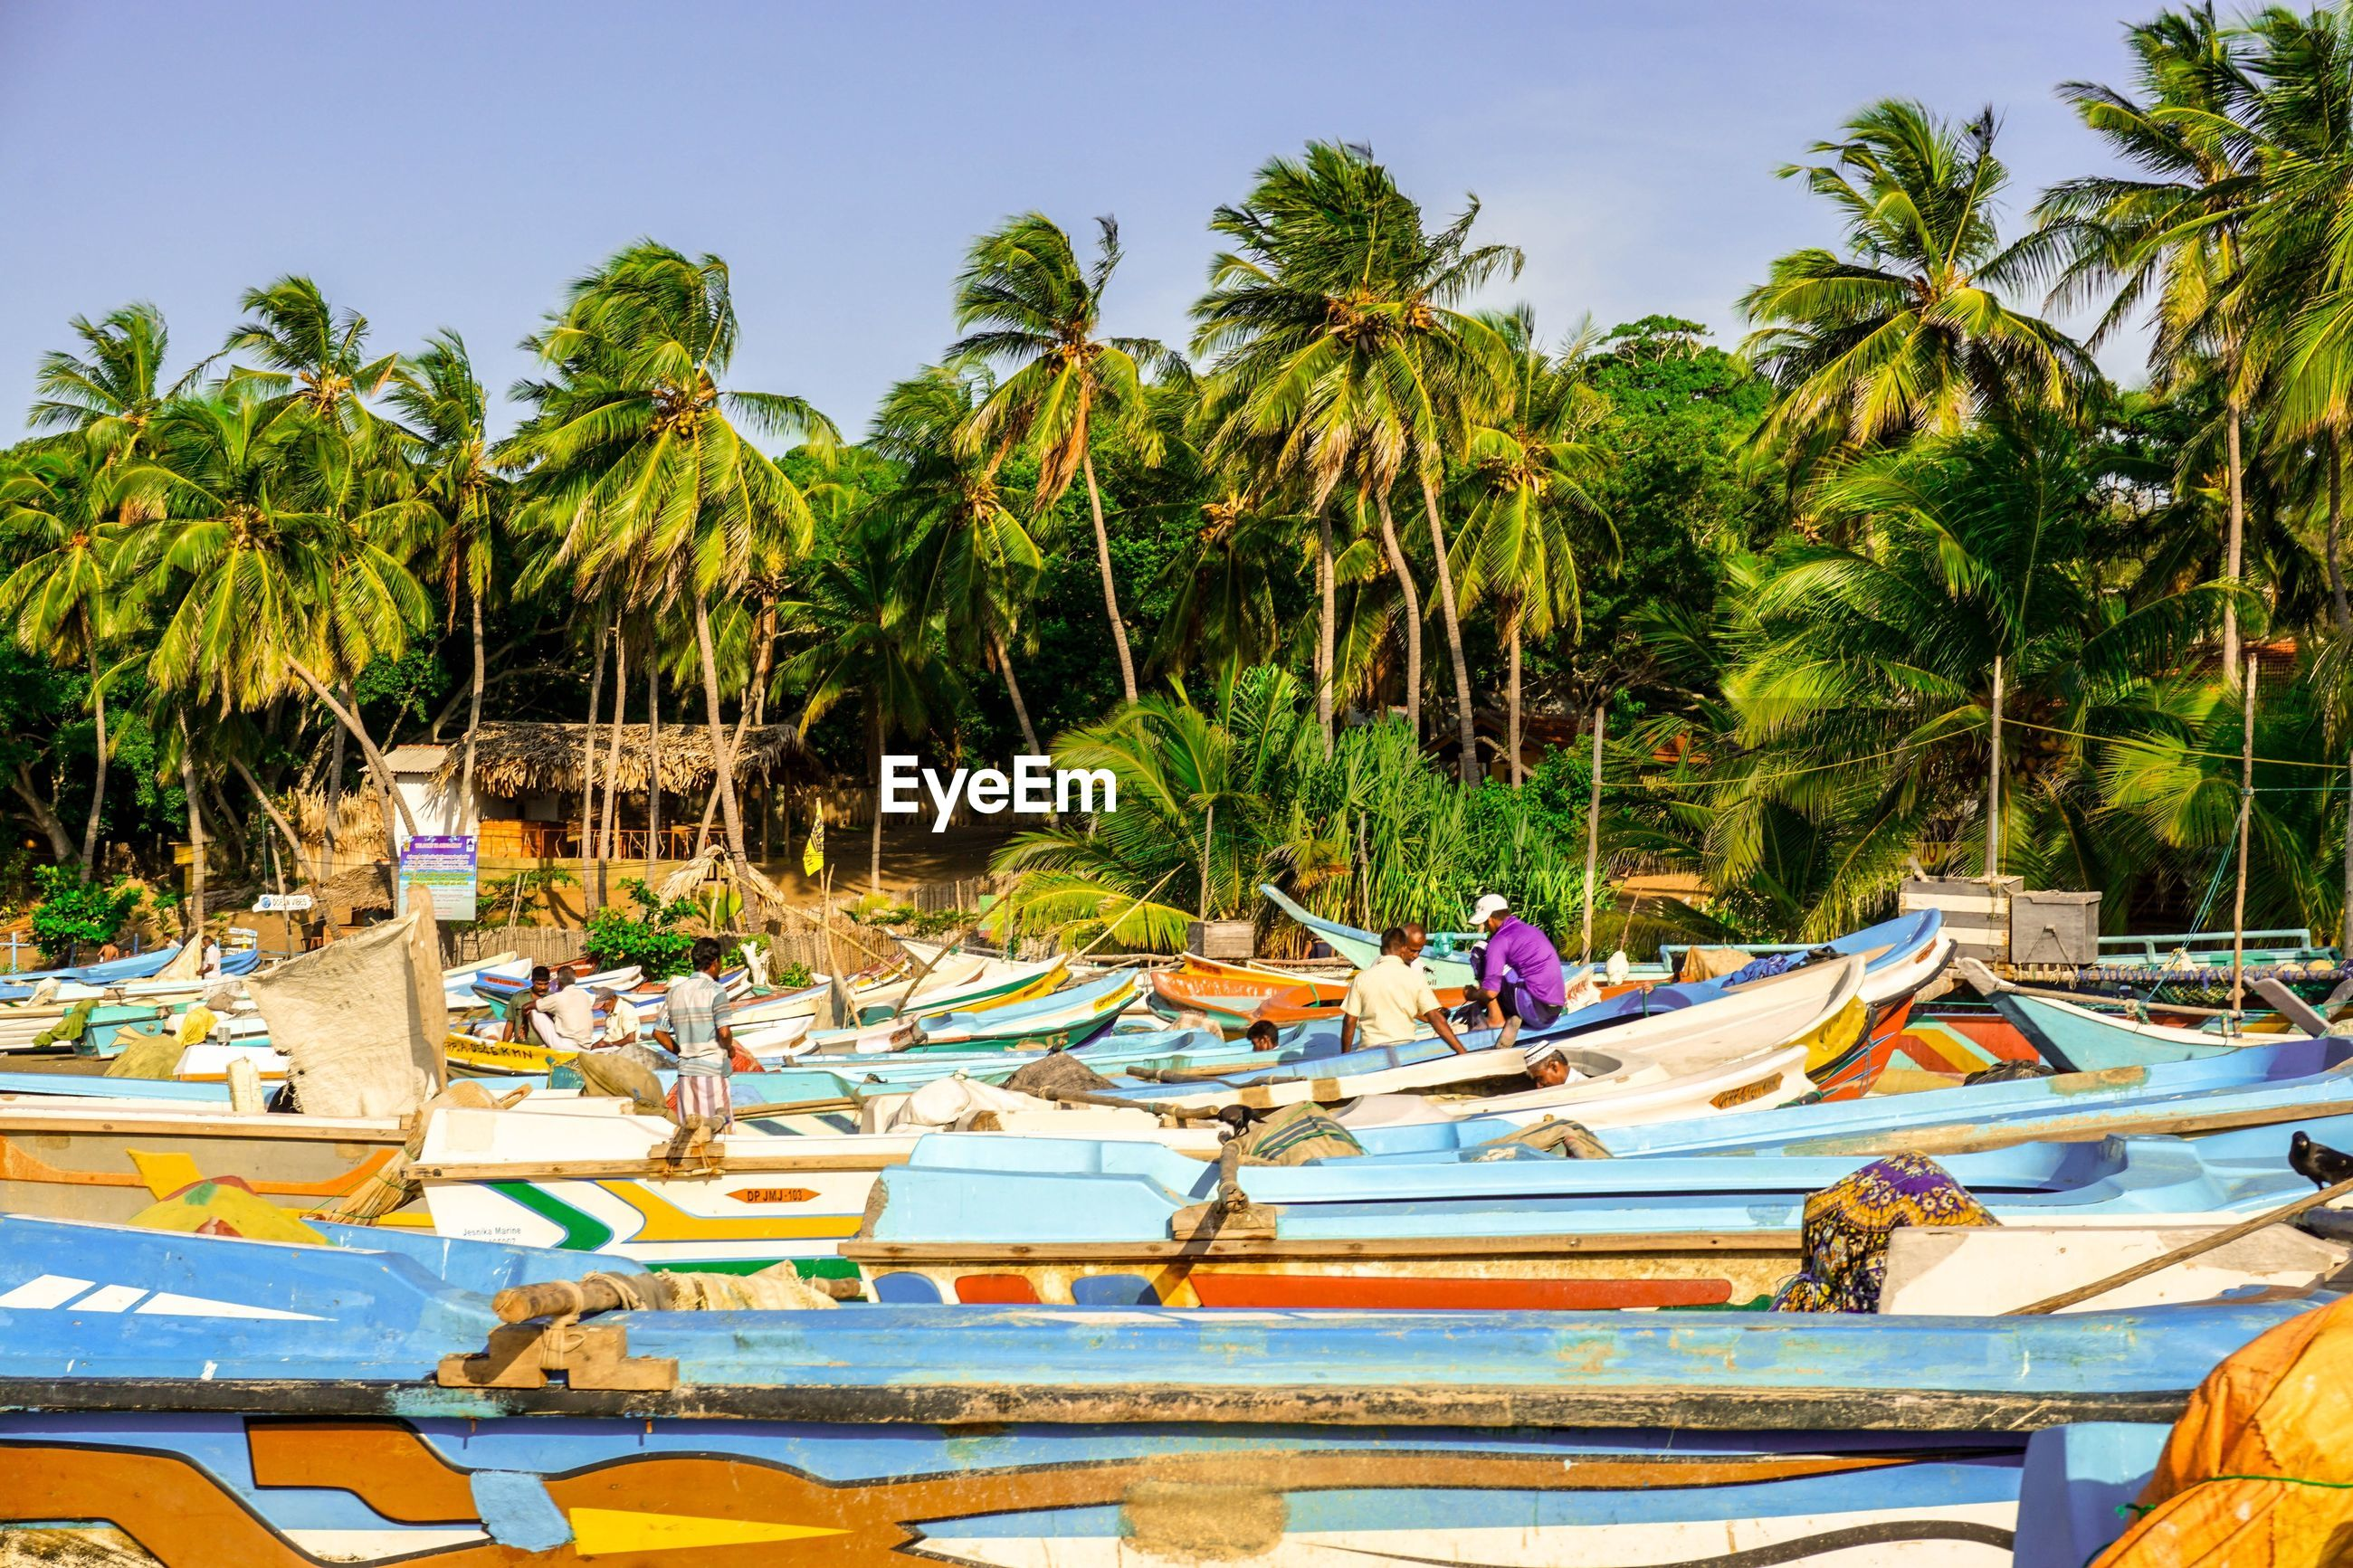 Boats moored against palm trees